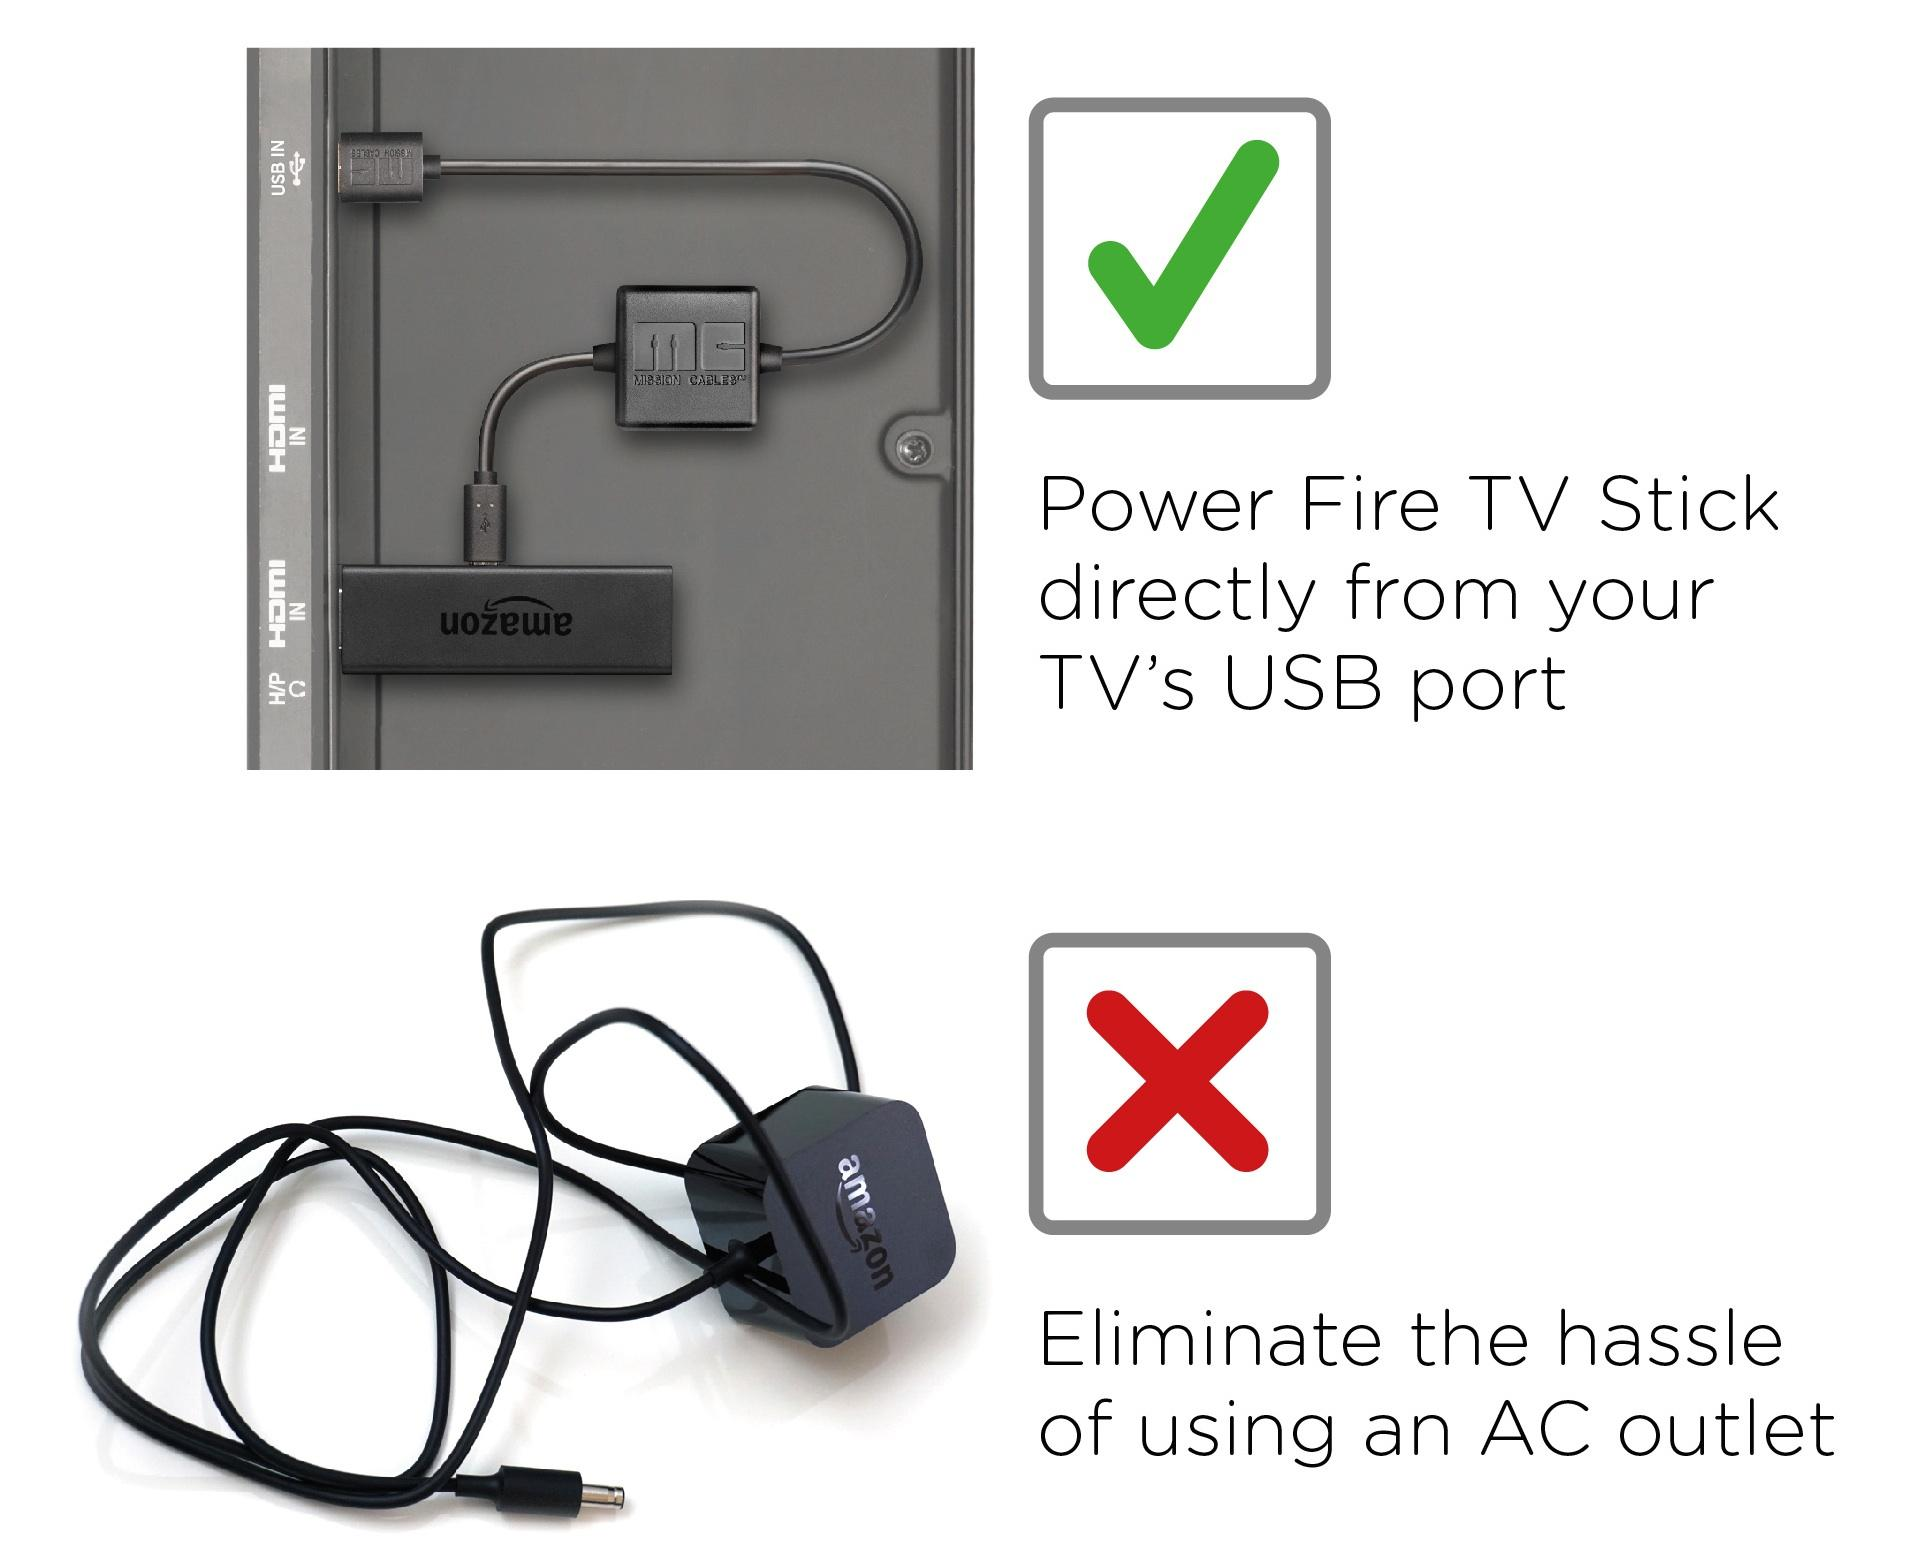 Roku Streaming Stick and Chrome Stick FirePower Cable Compatible with Fire Stick Micro USB Cable for Powering Any TV Stick Directly from TV USB Power Port